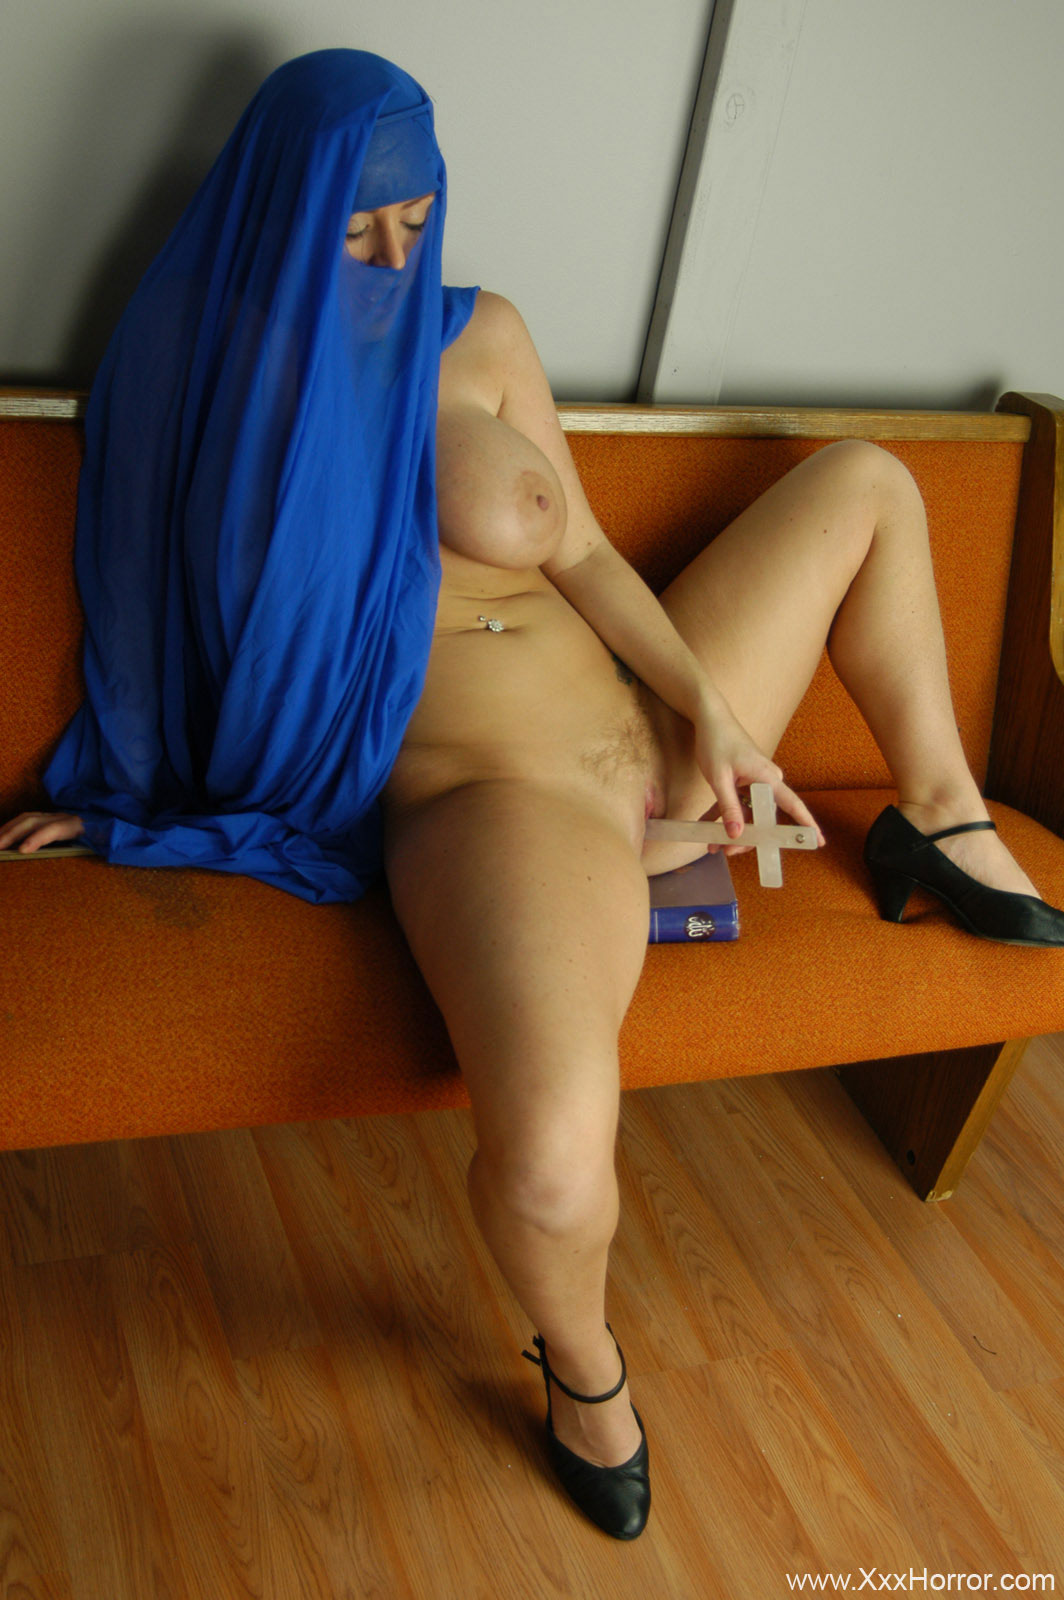 Your muslim girl ak 47 nude hot